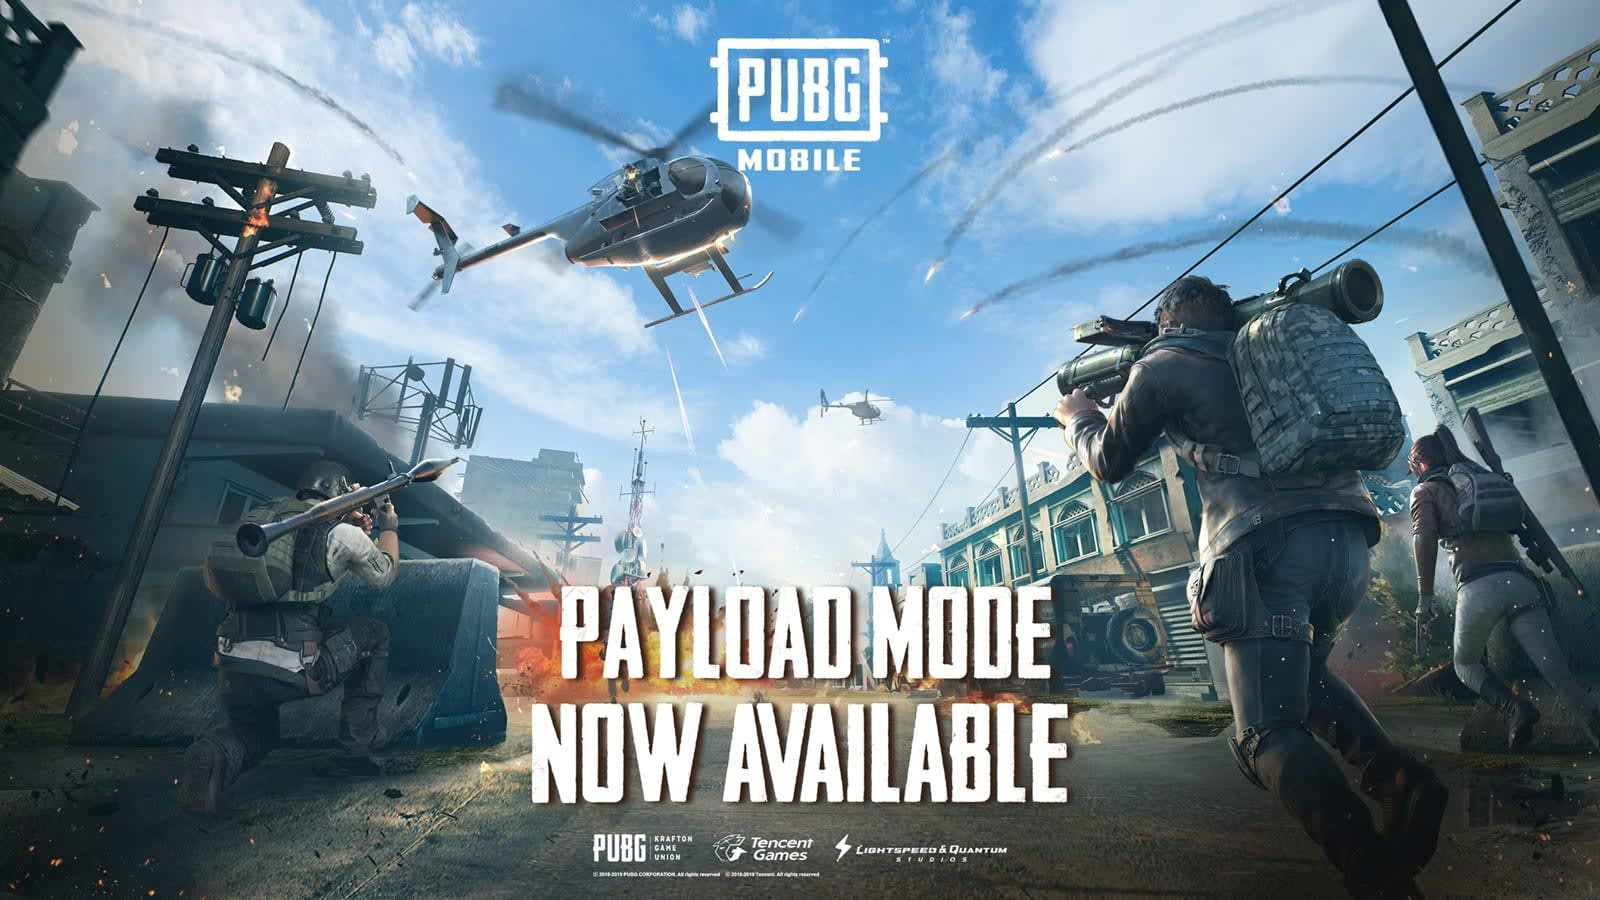 Pubg Mobile Payload Mode Adds Helicopters And Airstrikes